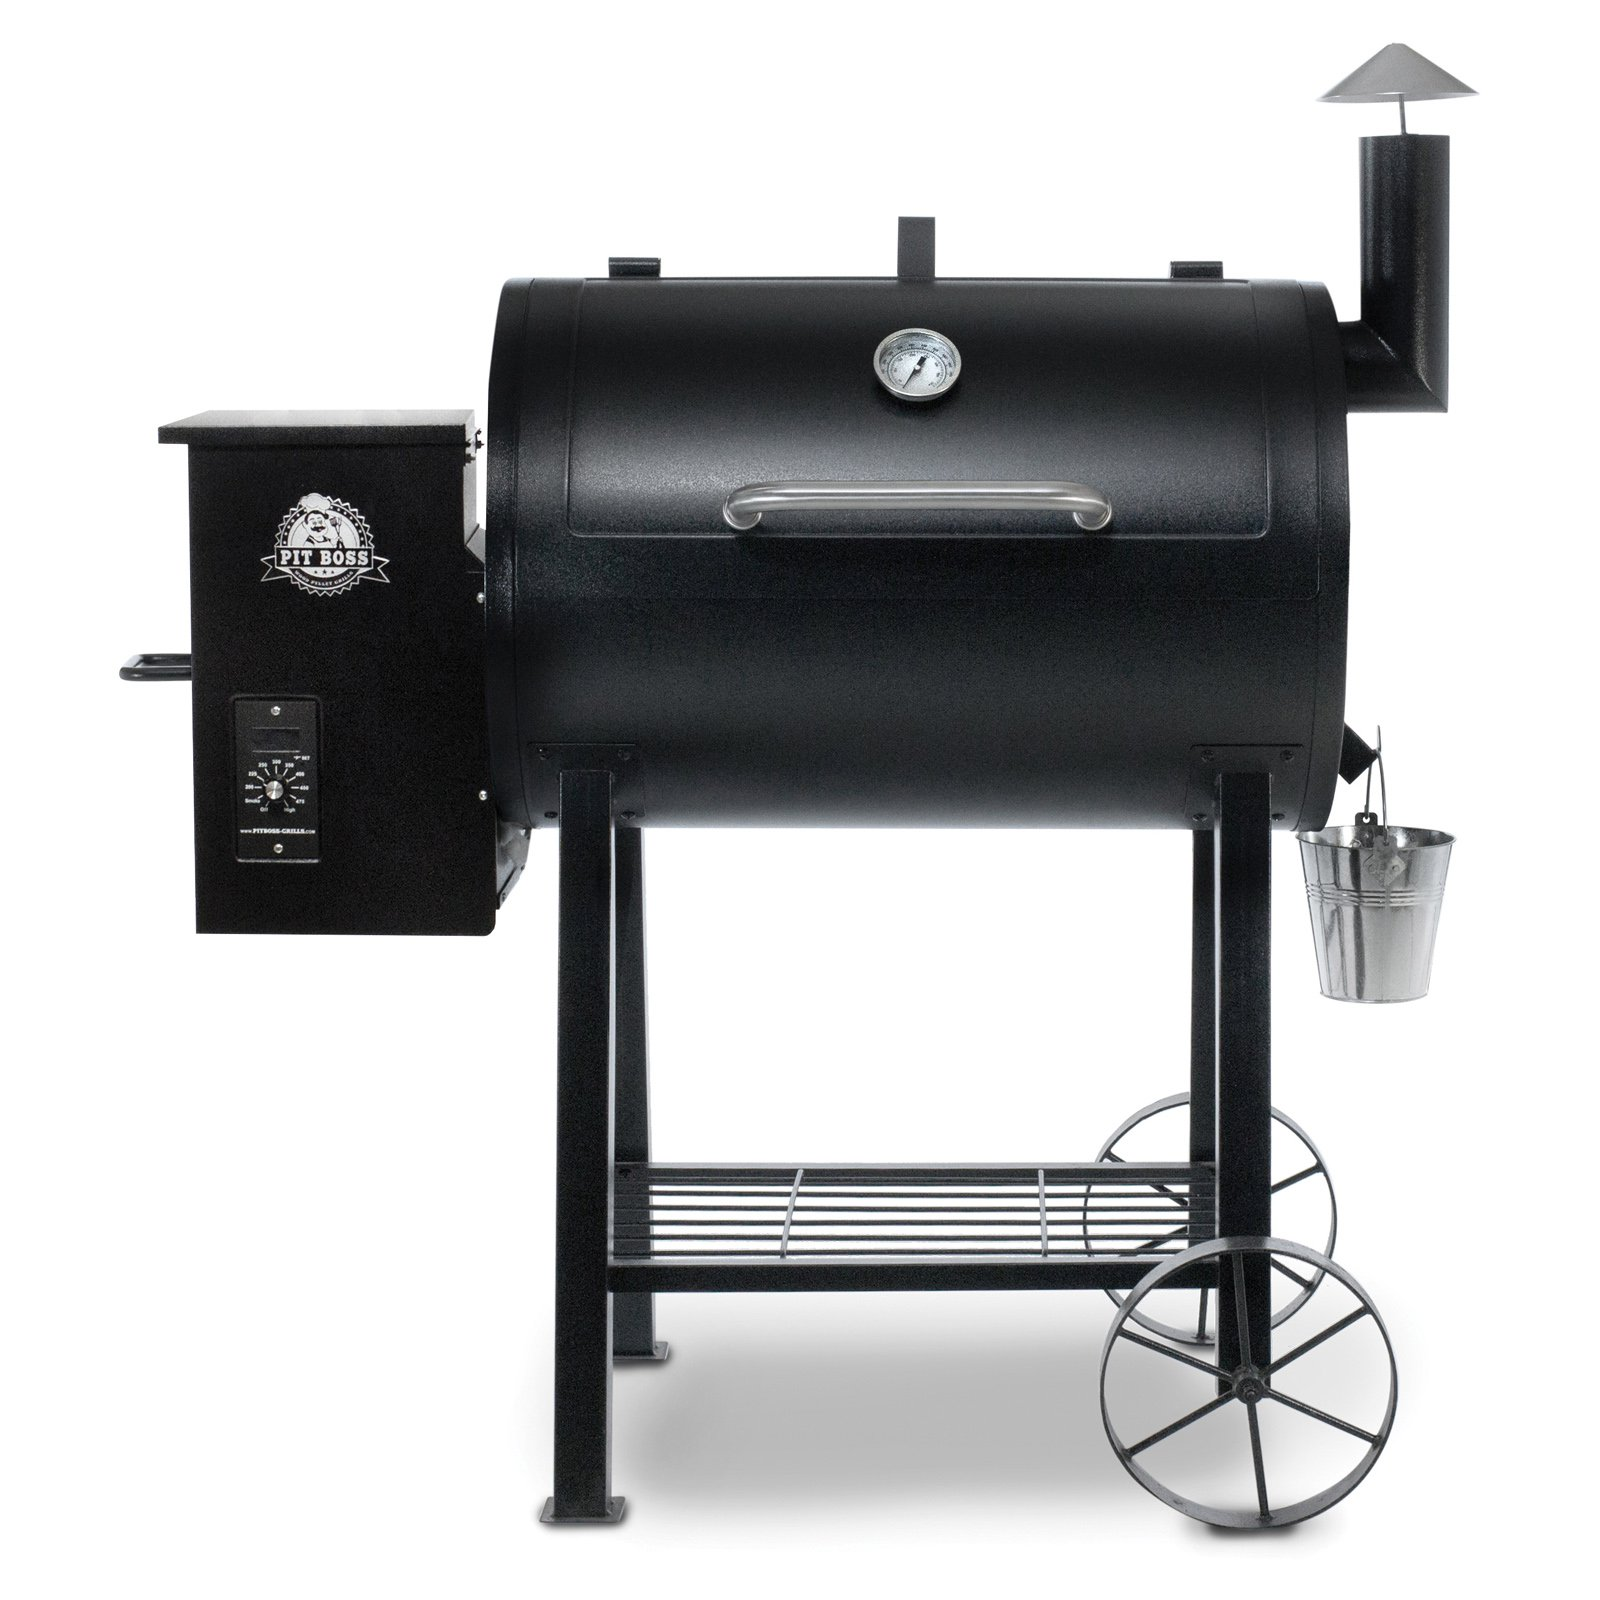 Pit Boss 820FB Wood Fired Pellet Grill w/ Flame Broiler